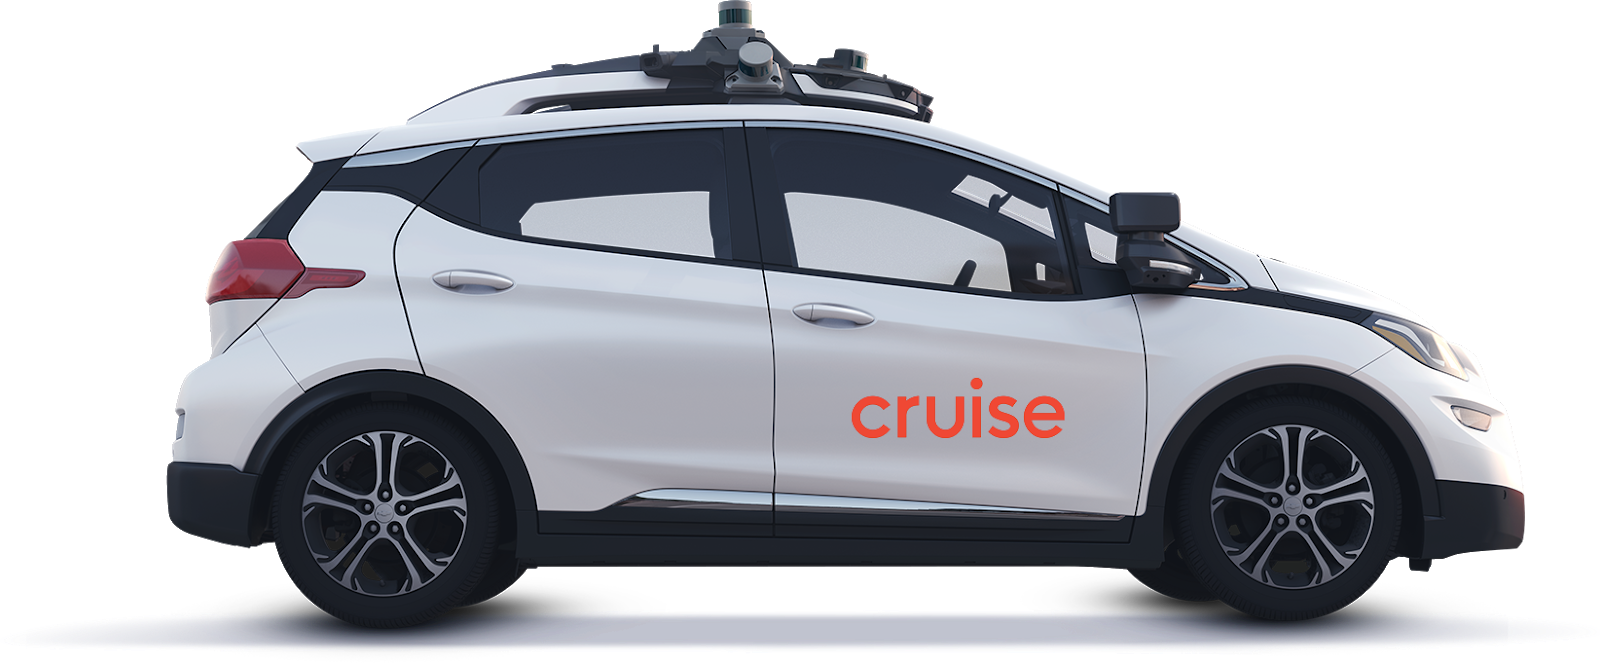 A Cruise self-driving car against a transparent background.